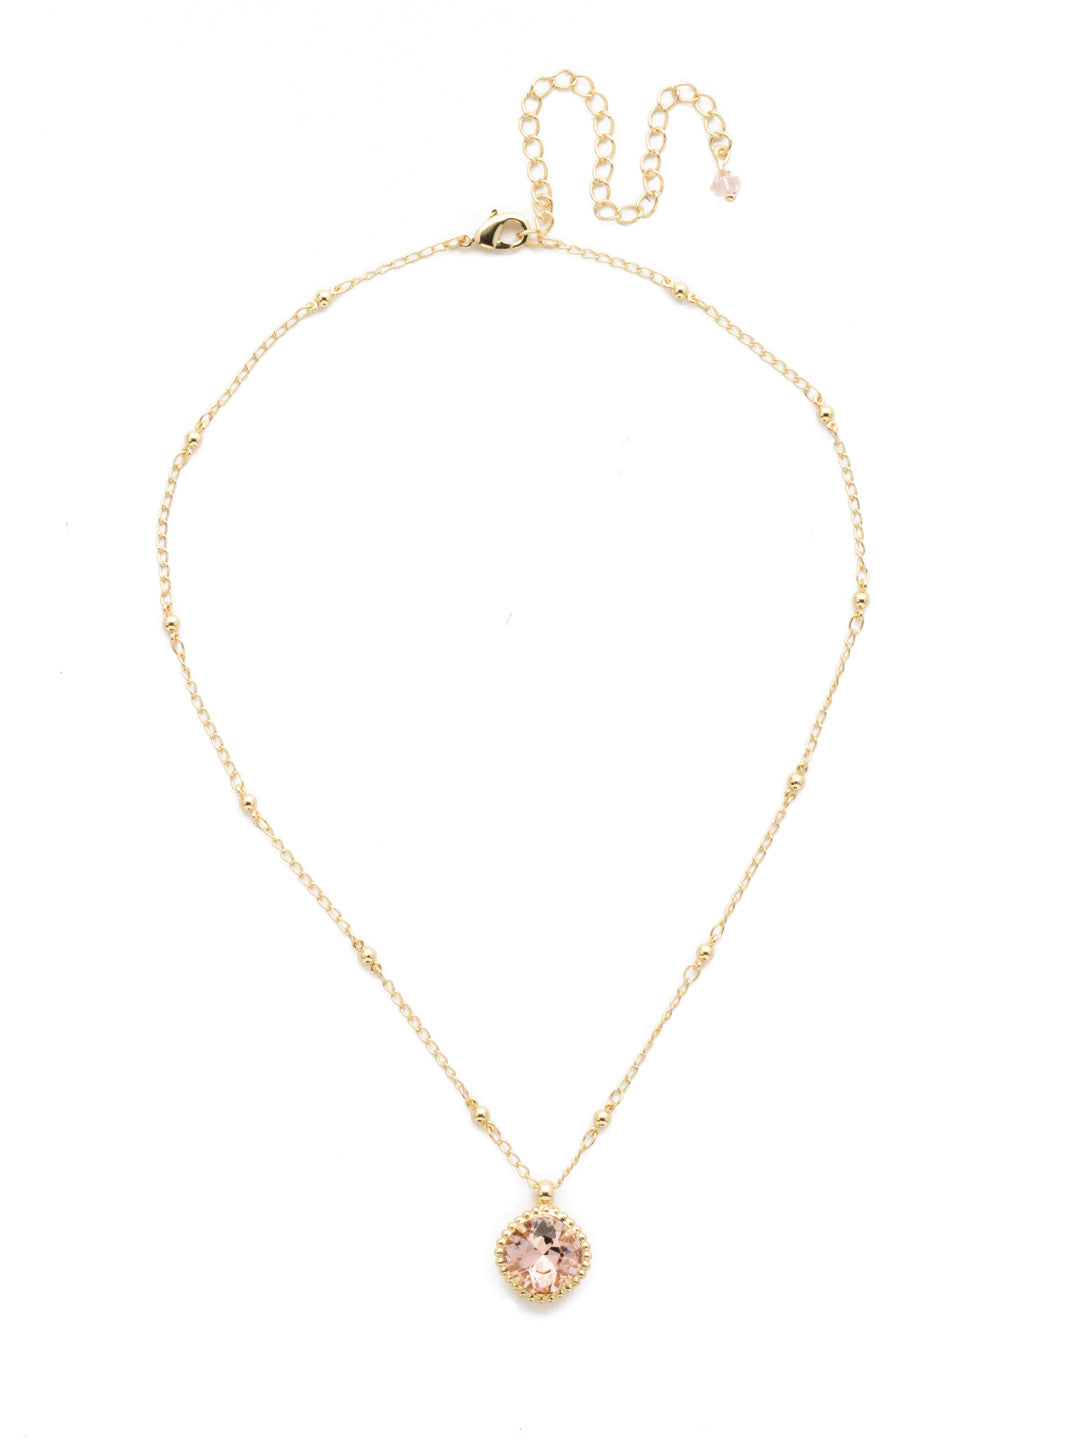 Cushion-Cut Solitaire Necklace - Sorrelli Essentials - NDS50BGVIN